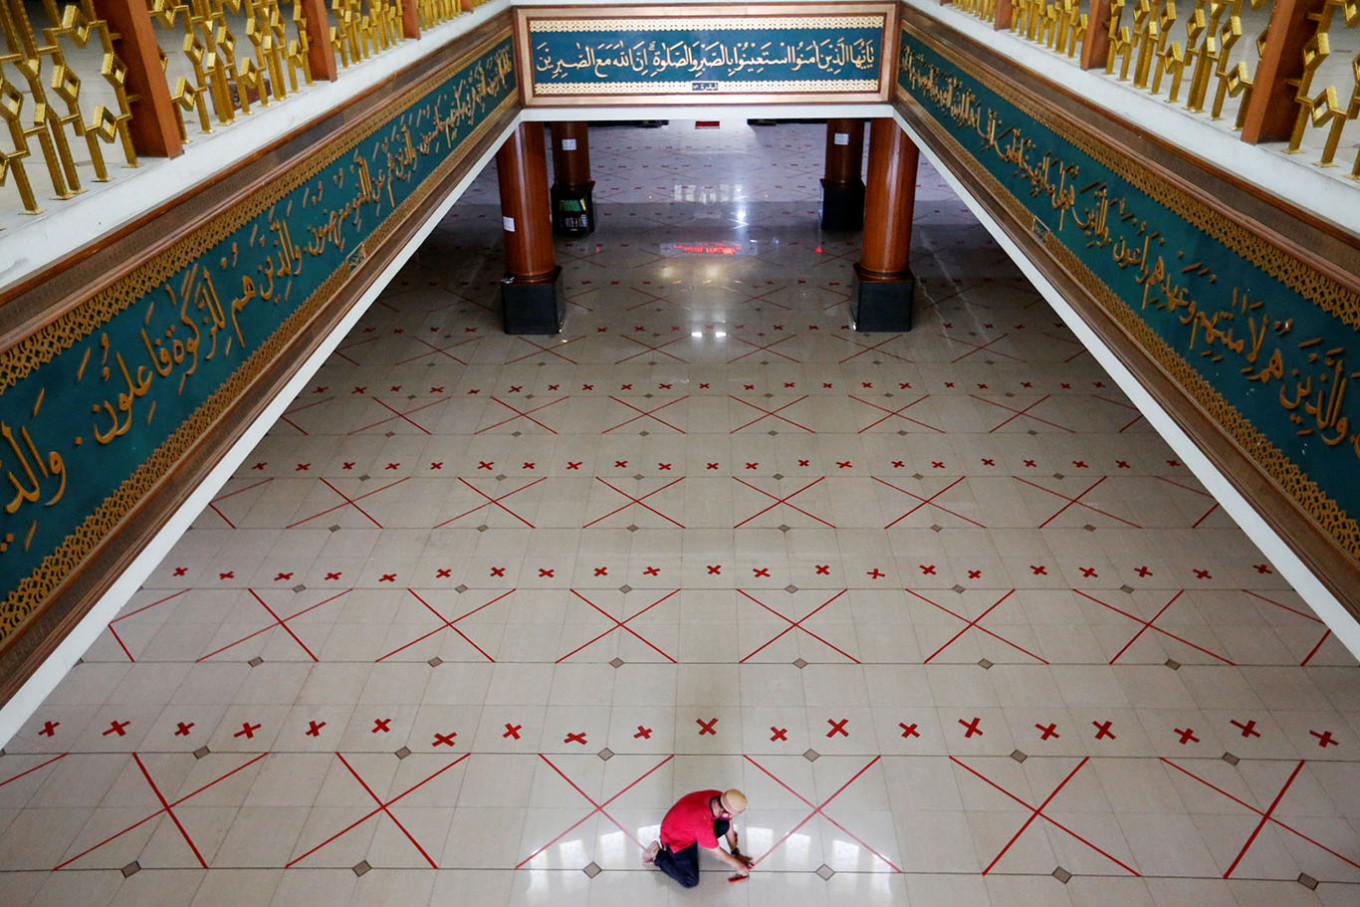 Muhammadiyah allows mosques to hold mass Friday prayers with strict health protocols